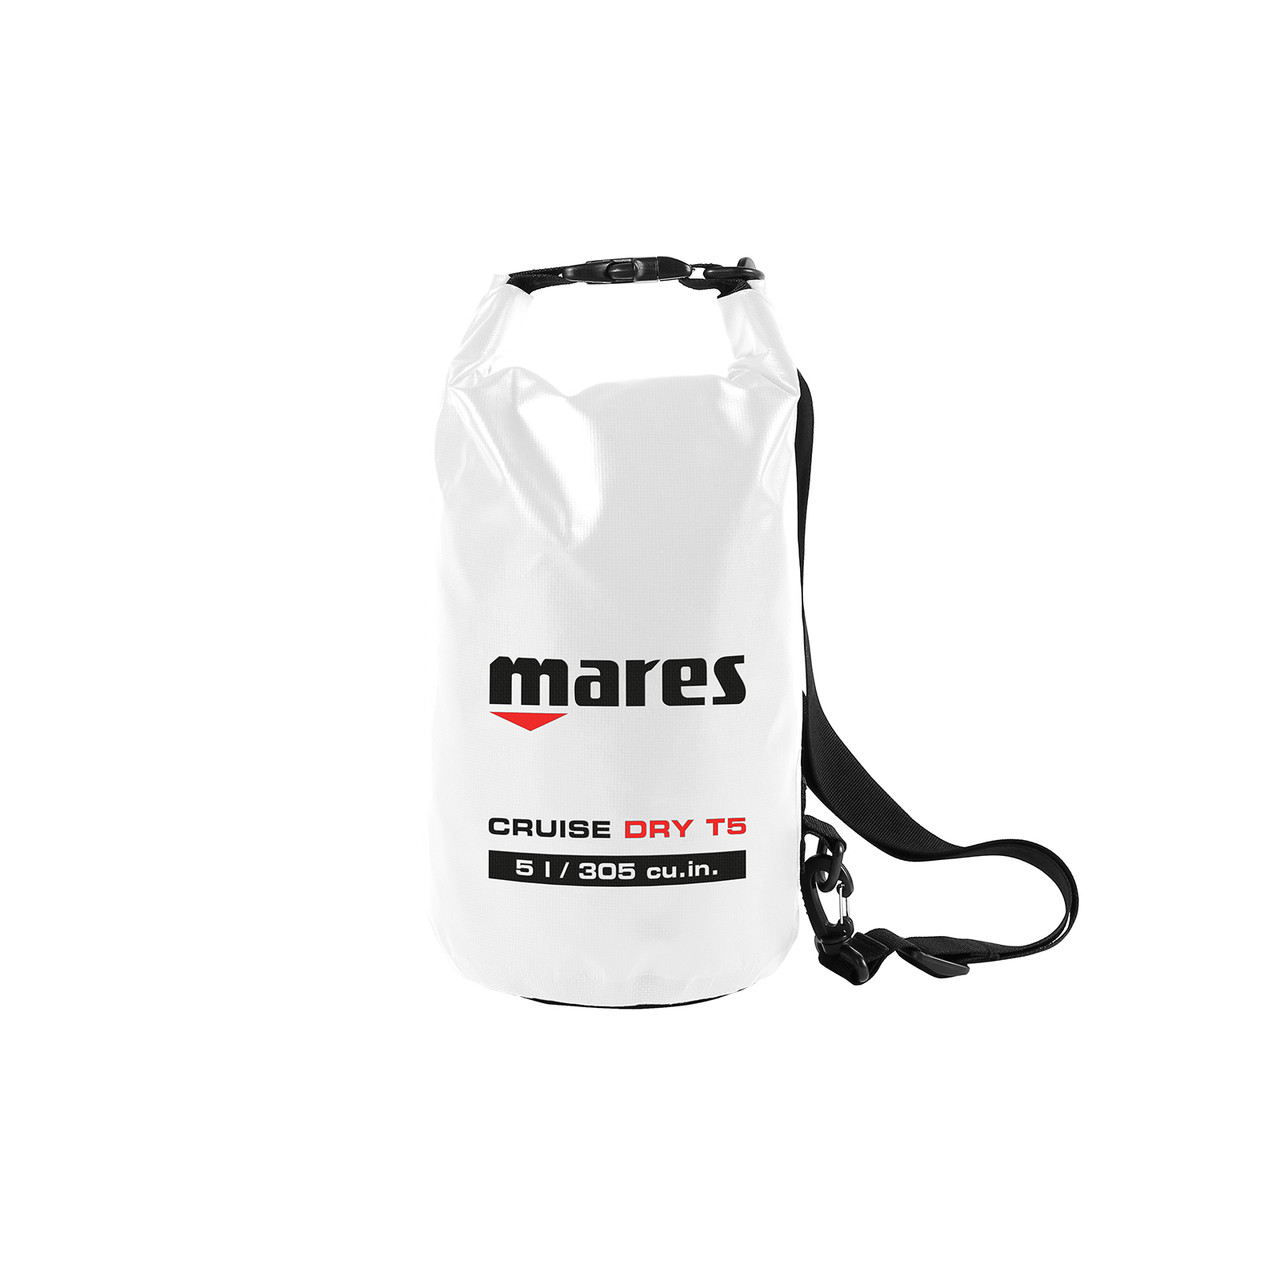 sports water bottle Fitness Equipment & Accessories 305cu in